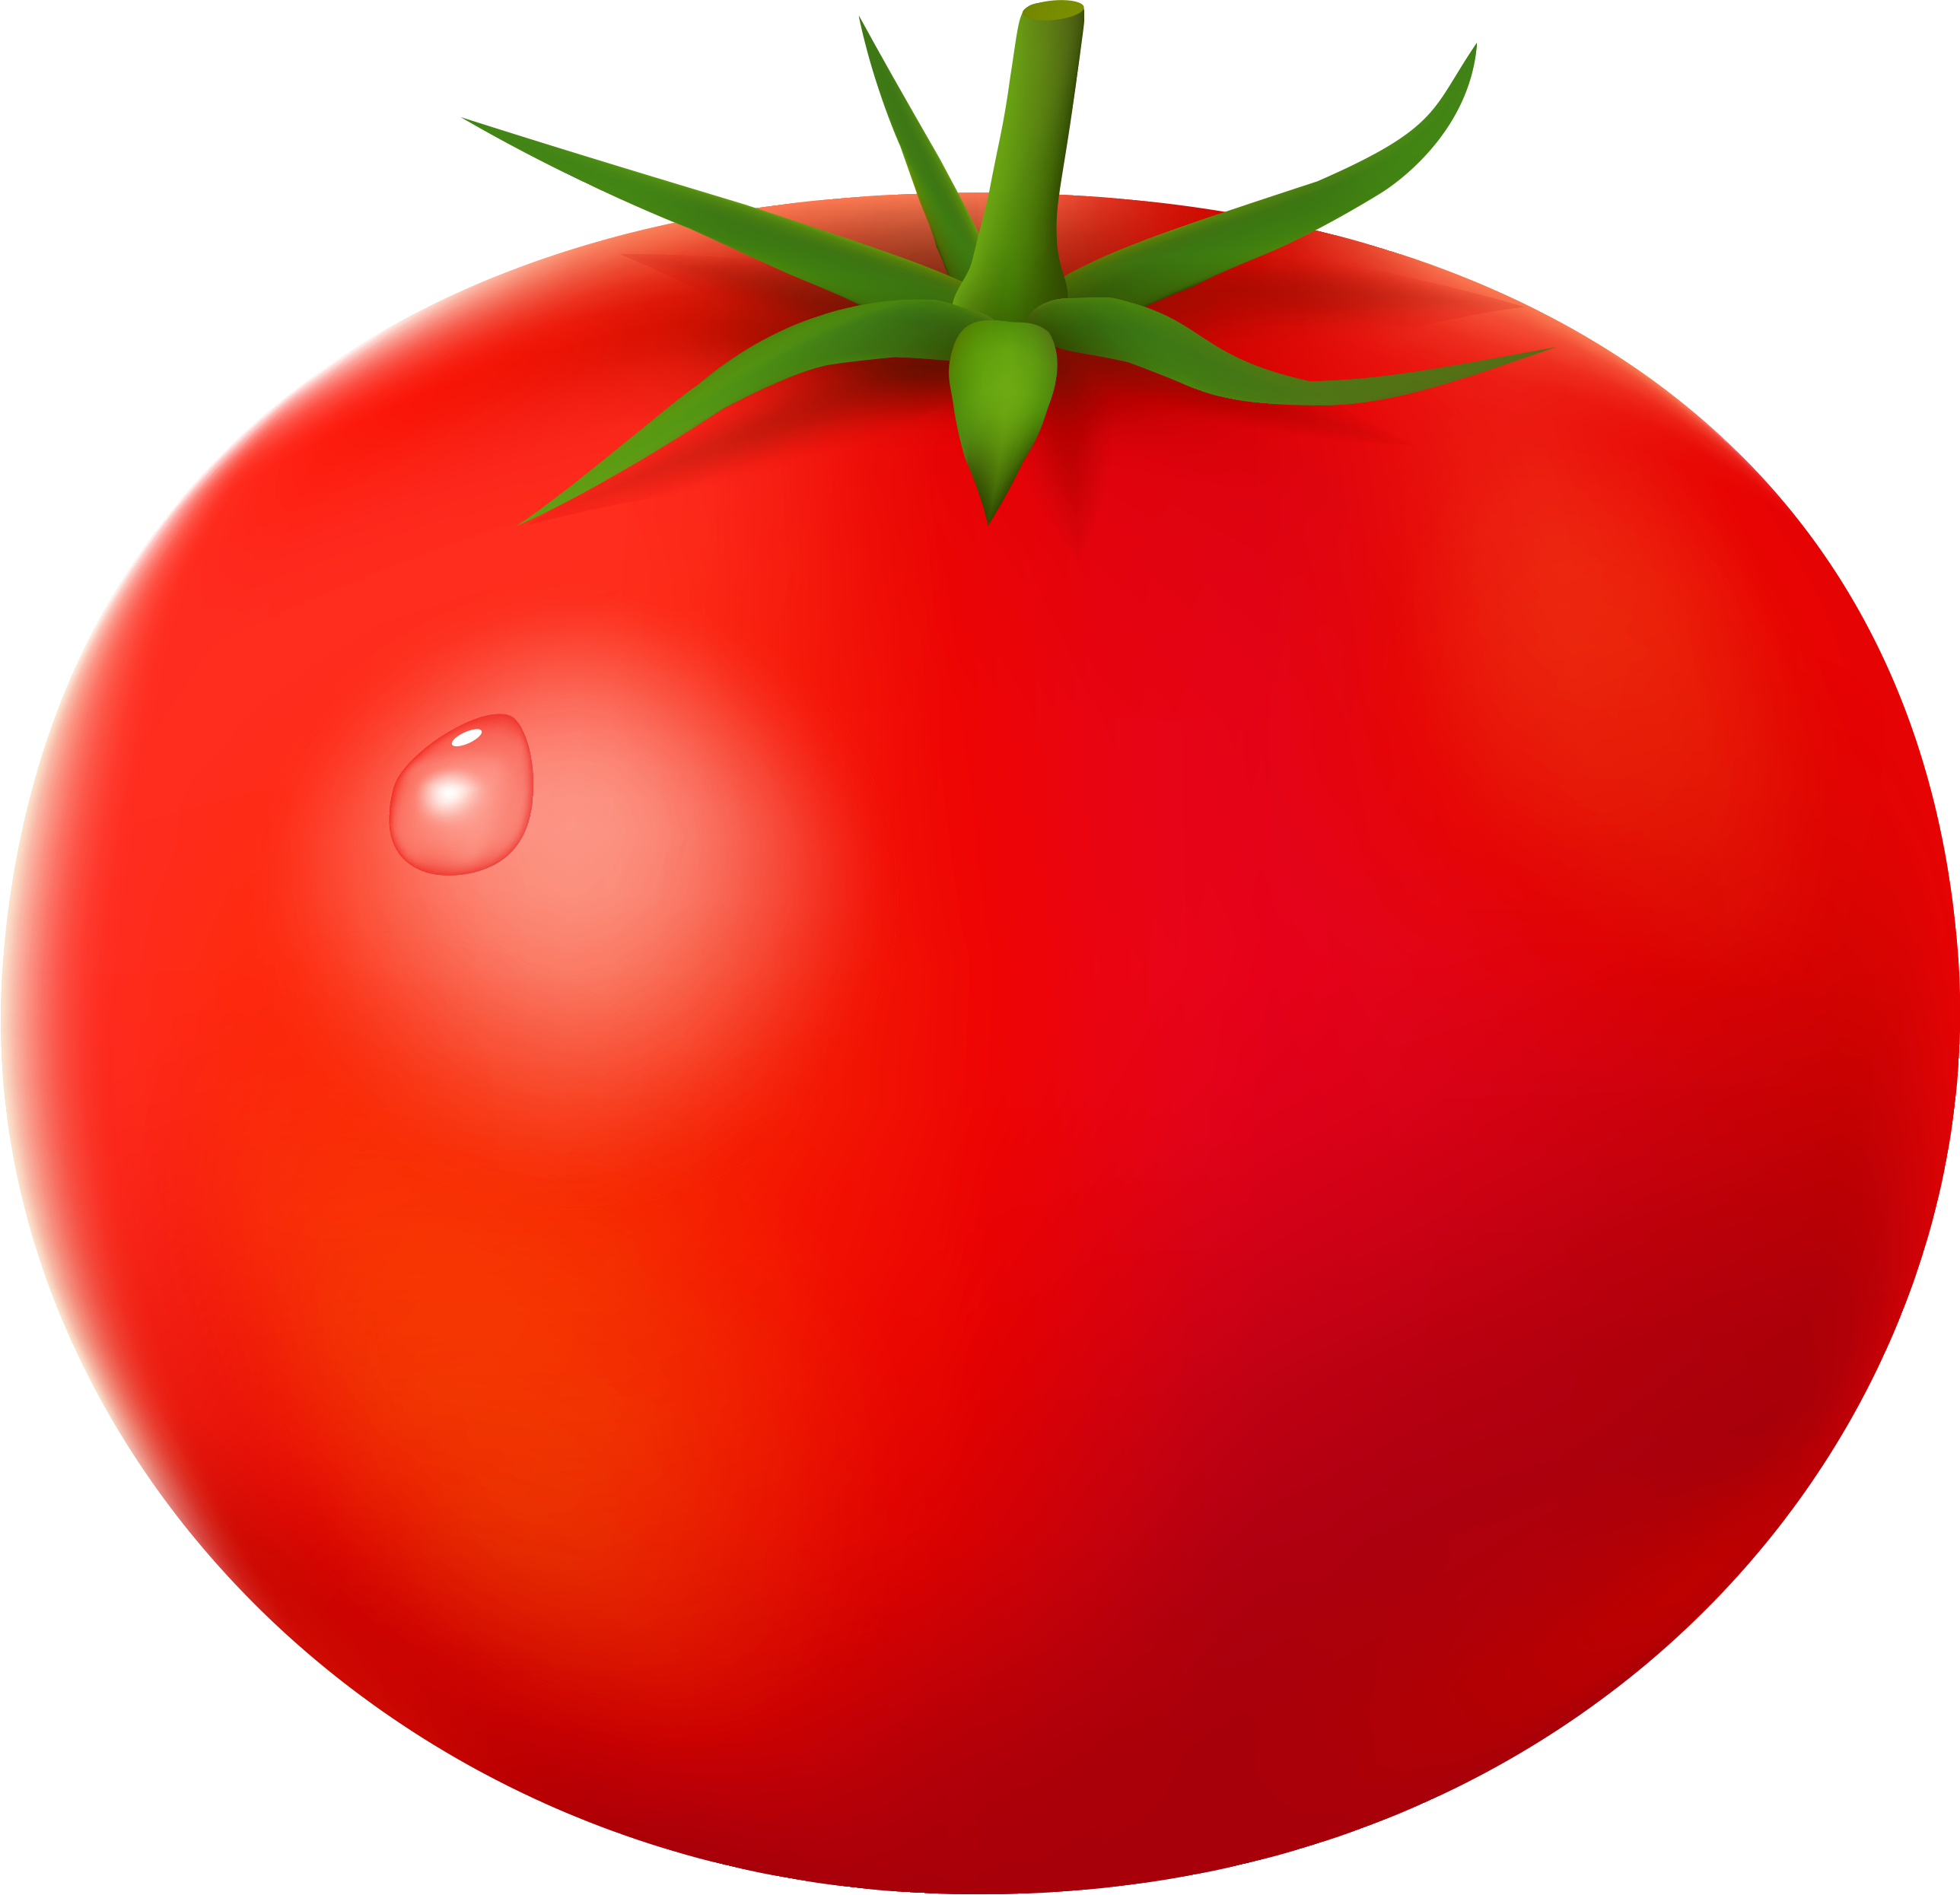 Vegetables clipart vege. Tomato image id png